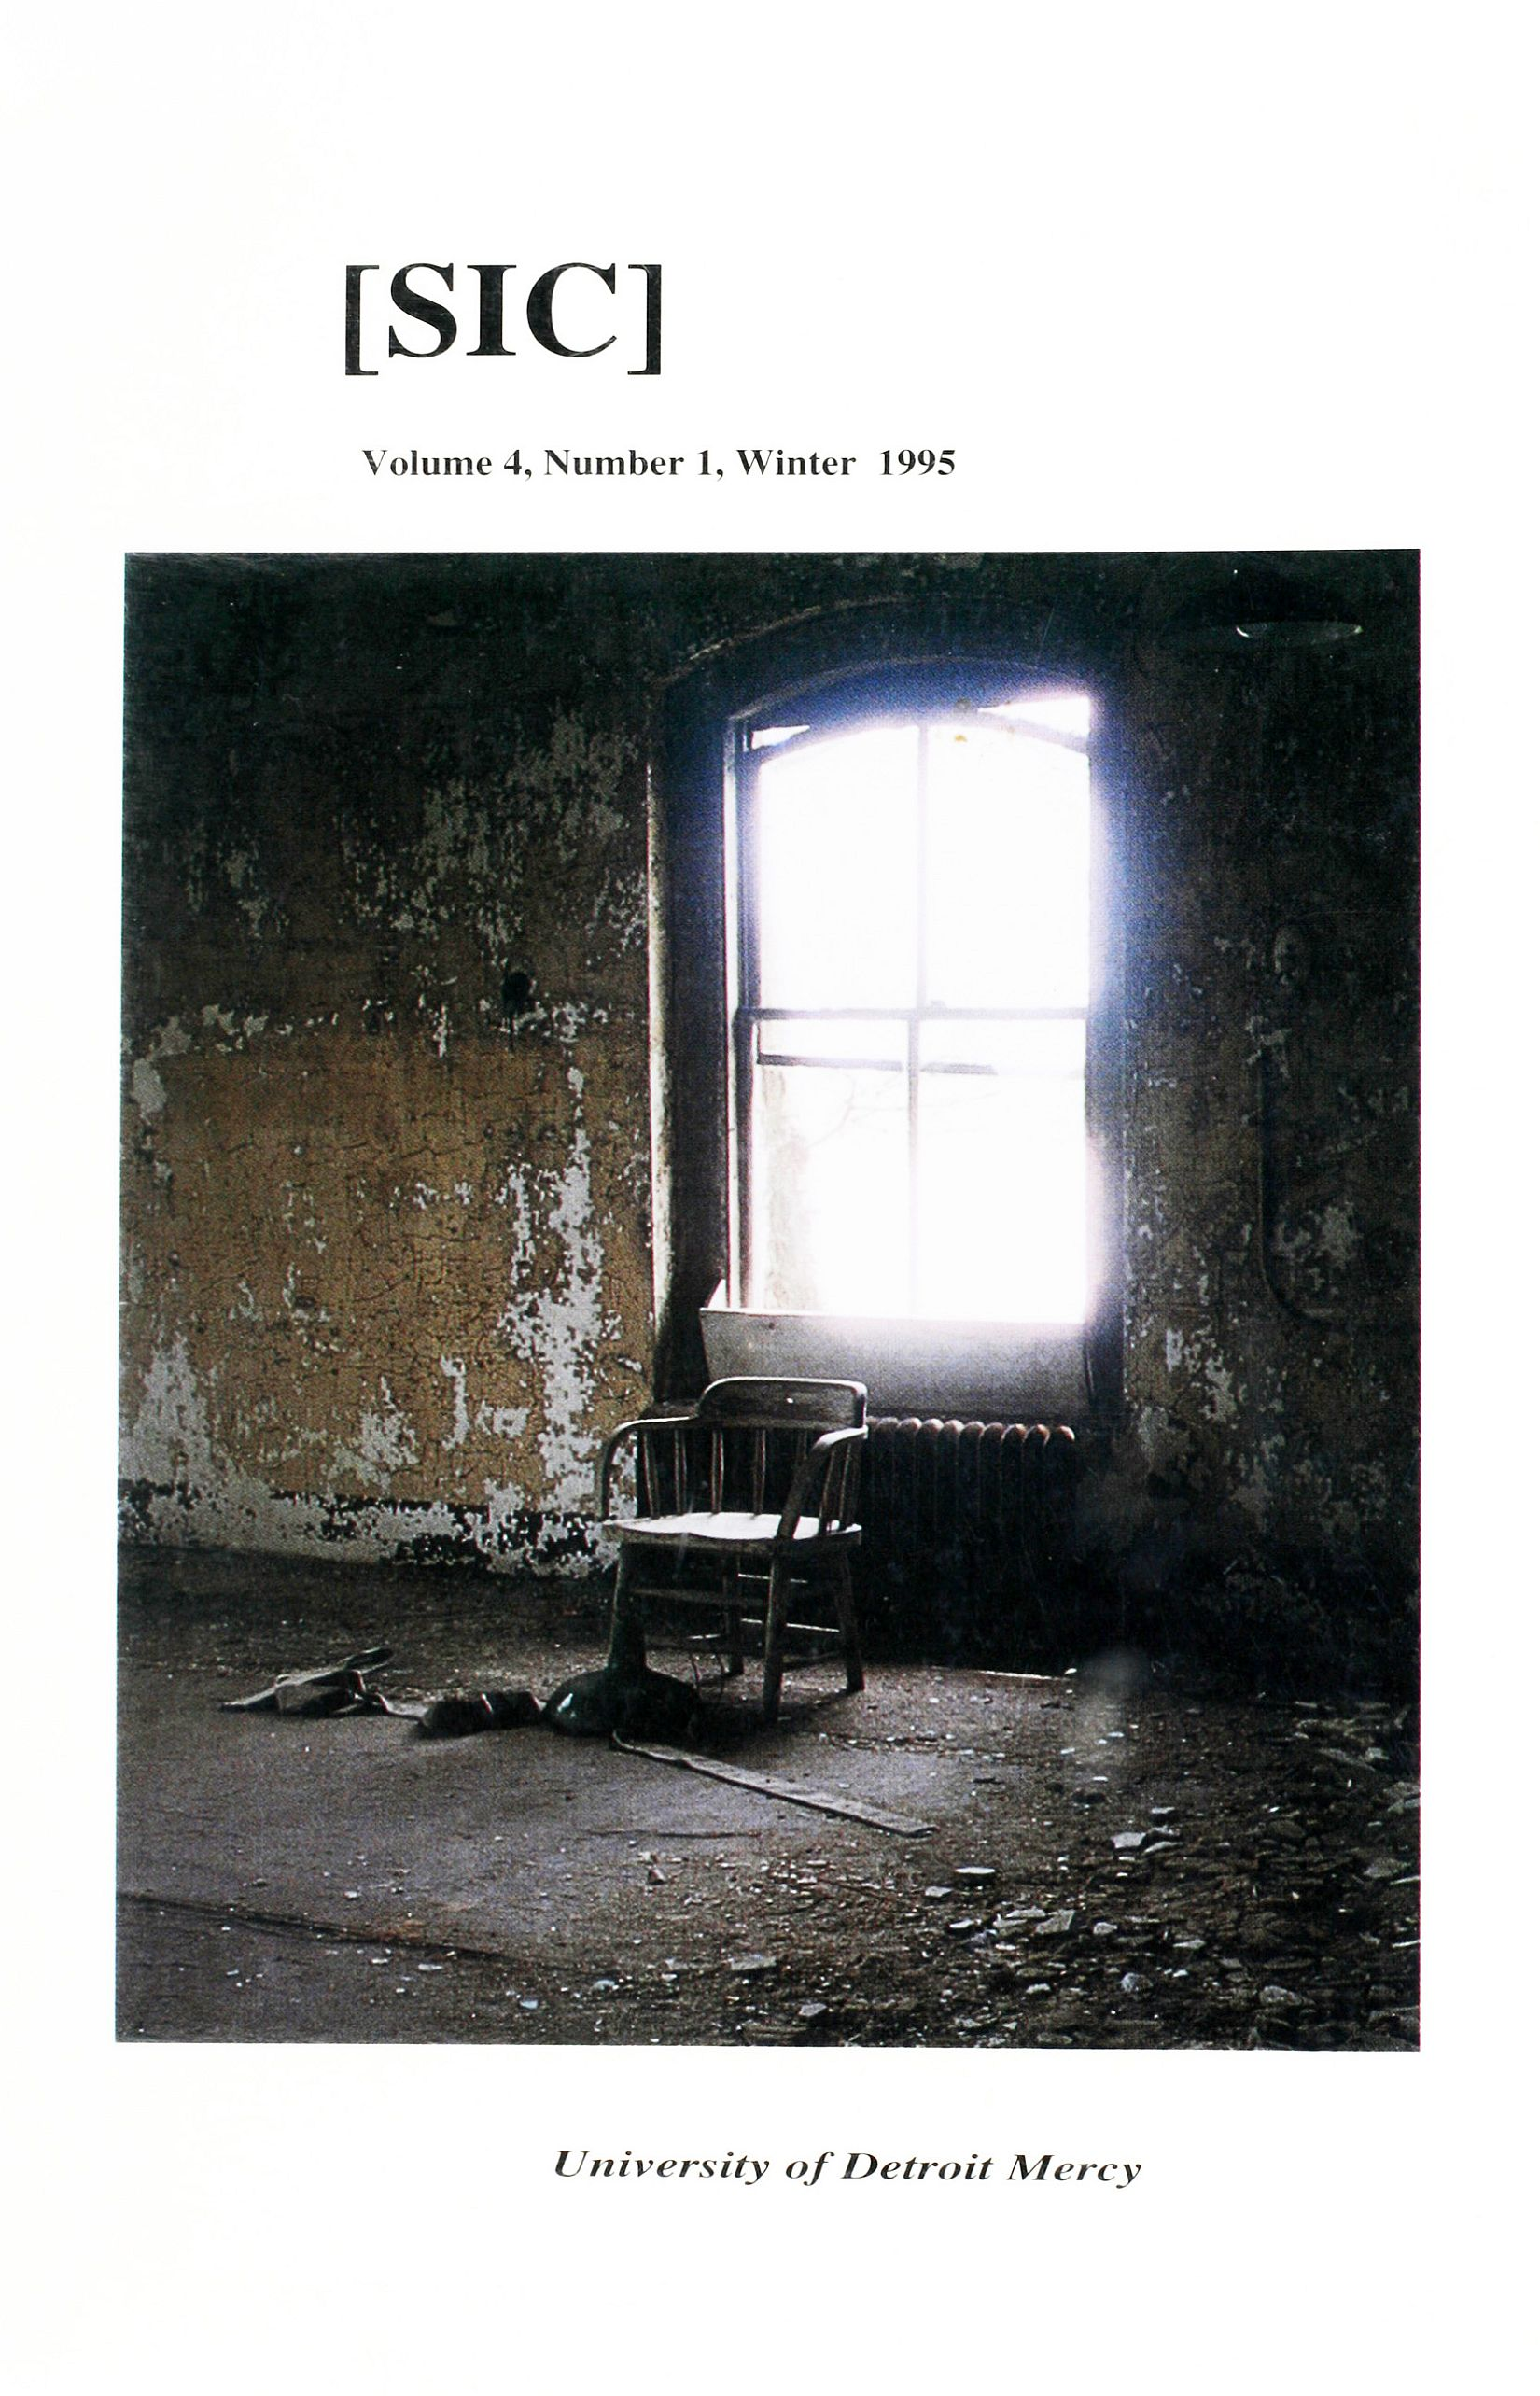 [SIC] Volume 4, Number 1, Winter 1995 University of Detroit Mercy